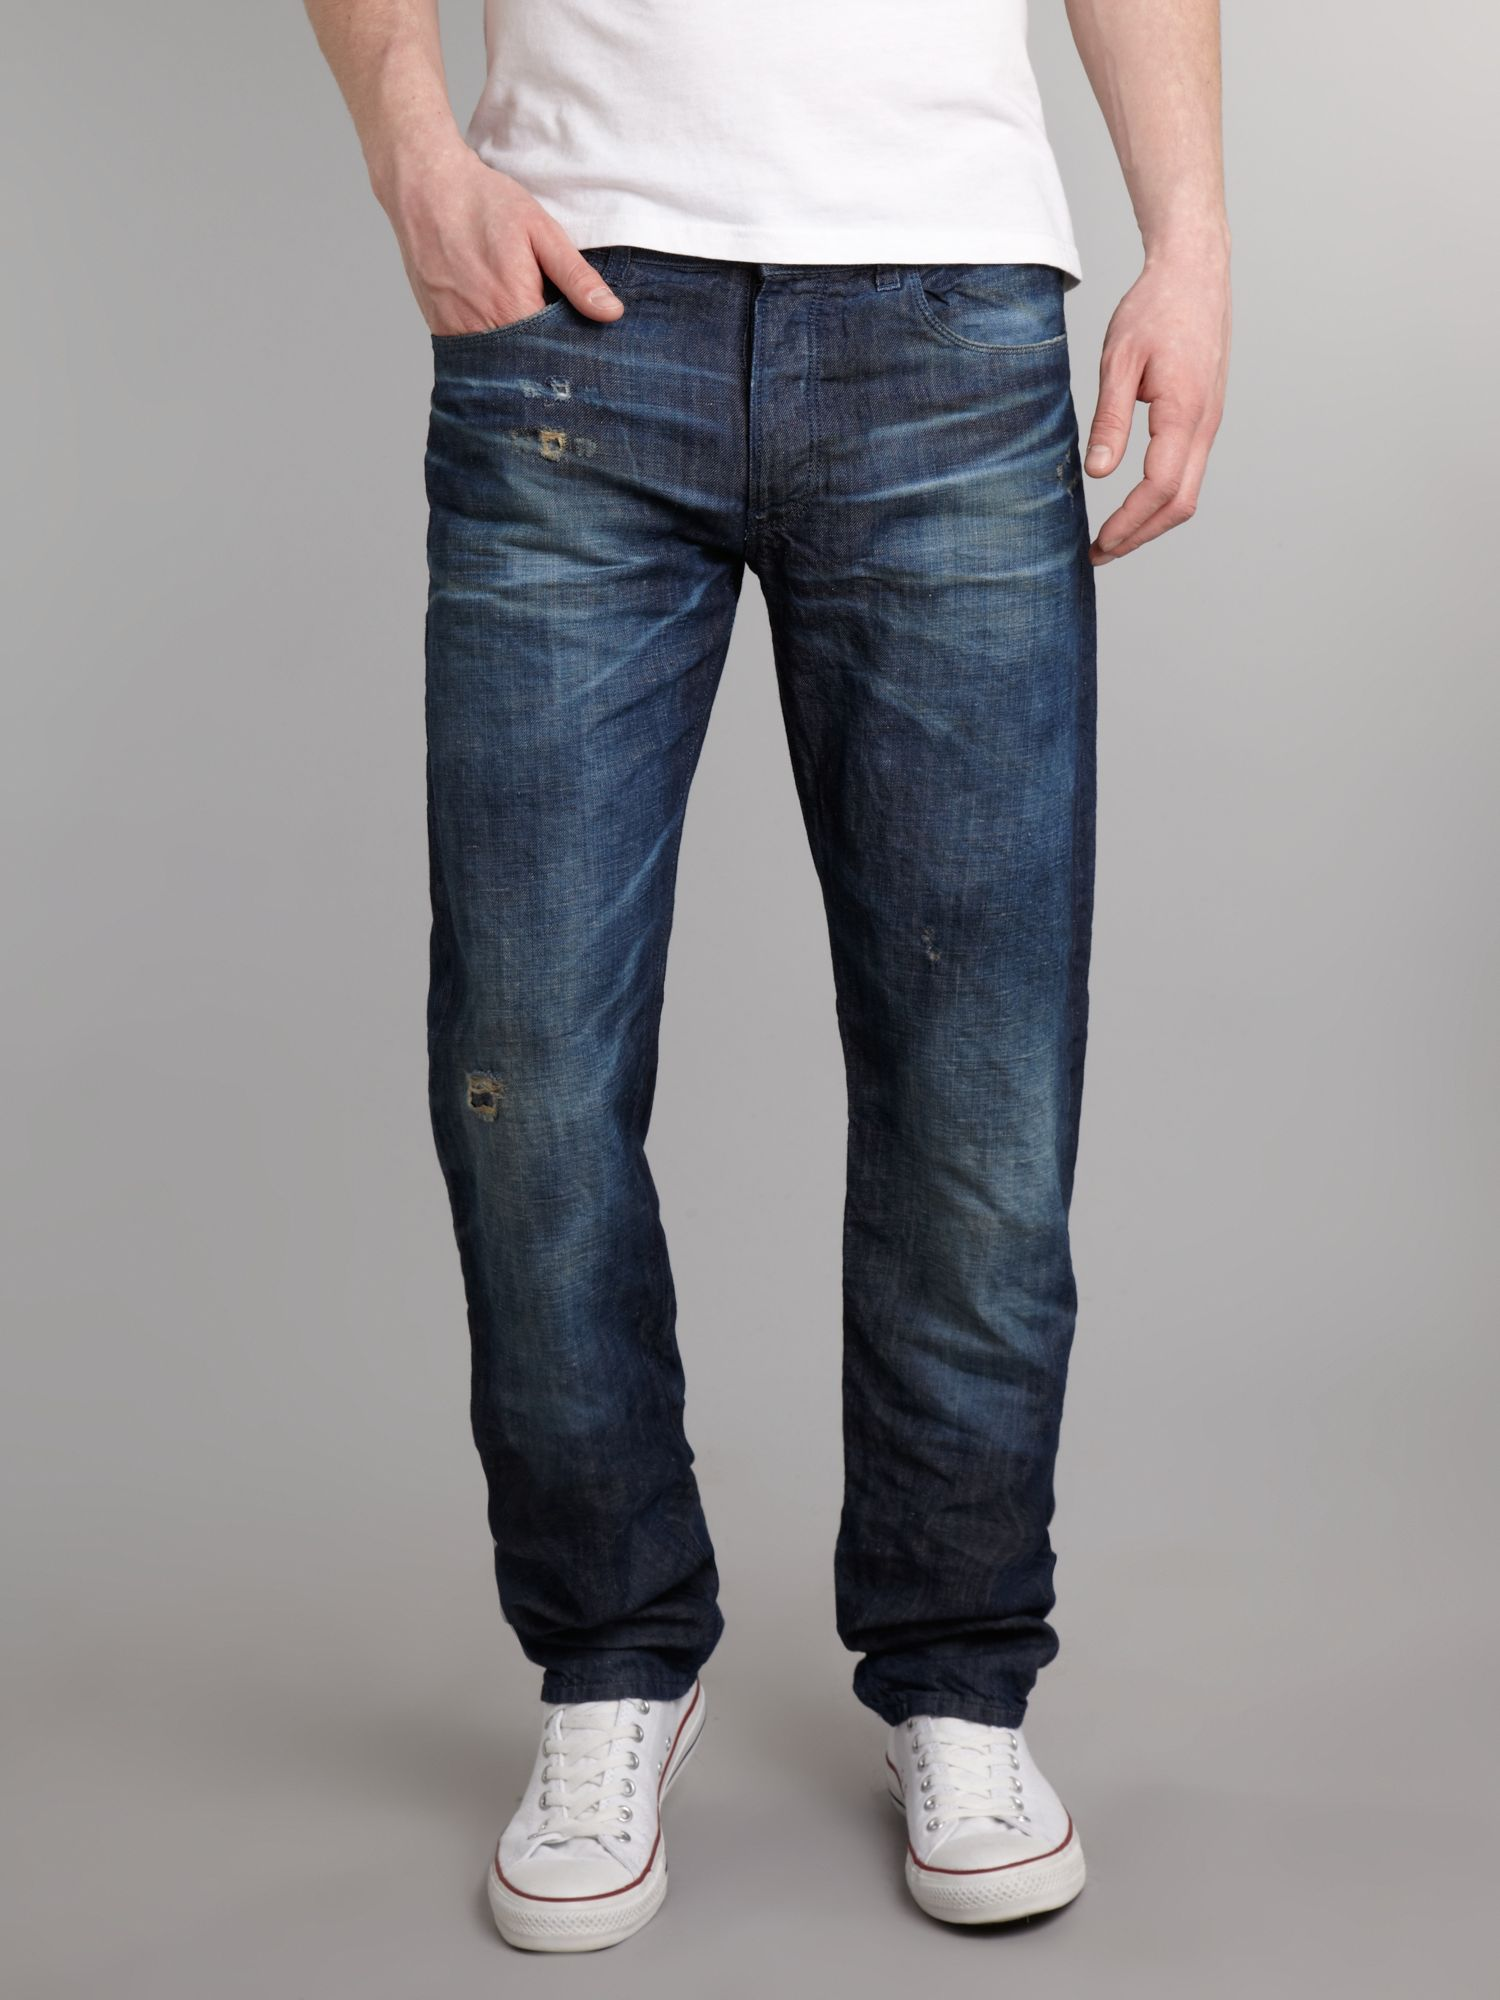 Regular fit ice blast wash jeans